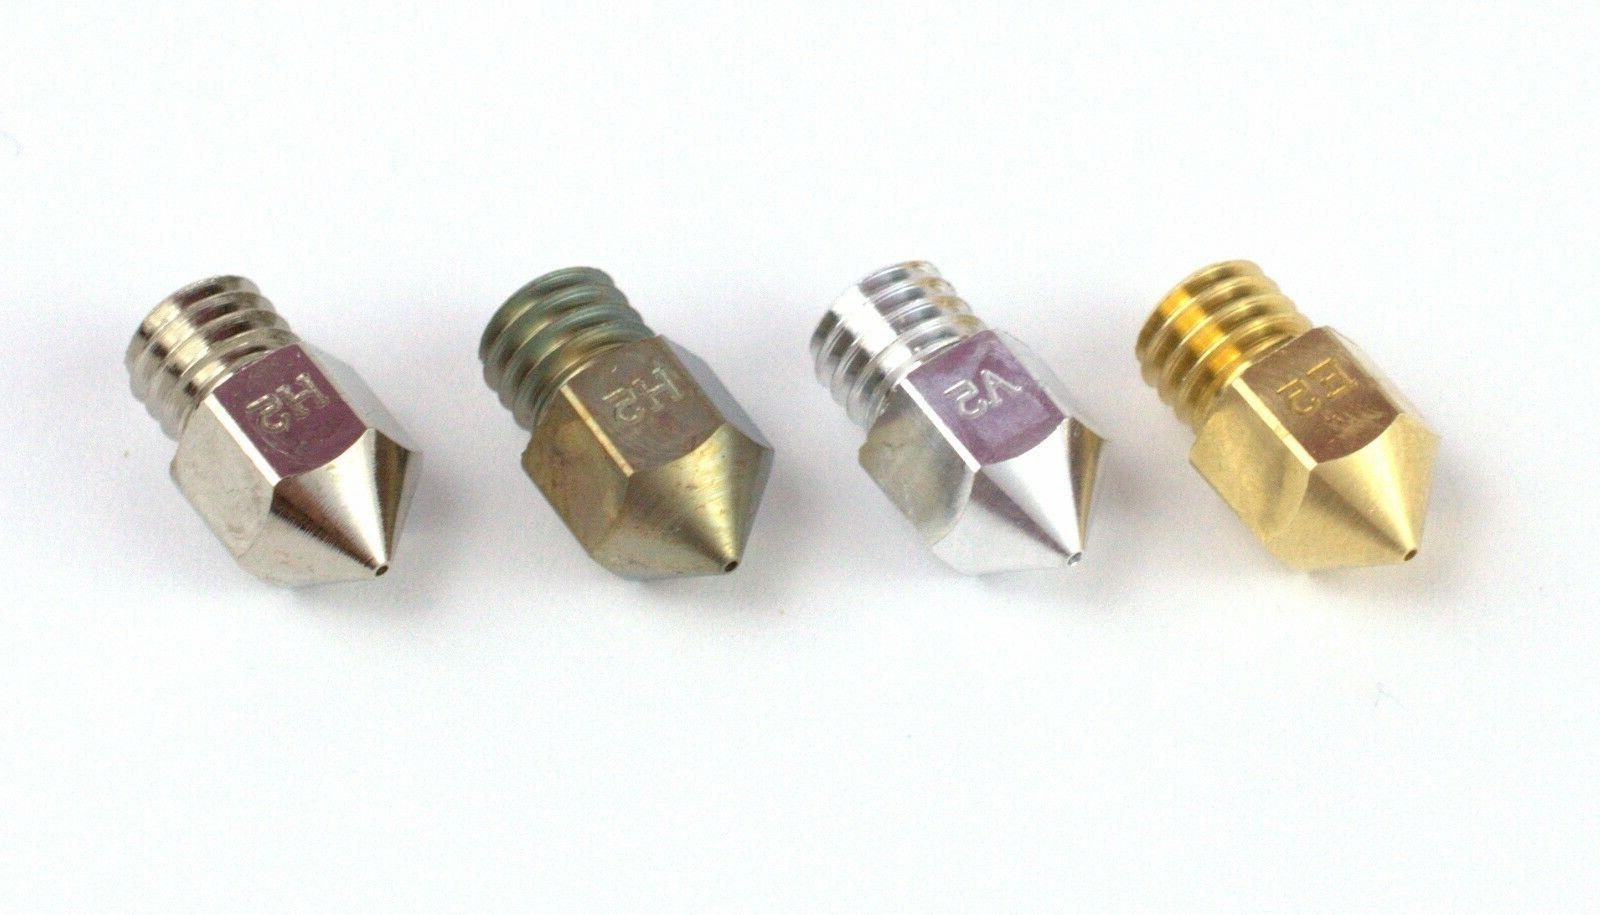 high performance 3d printer extruder nozzles wear